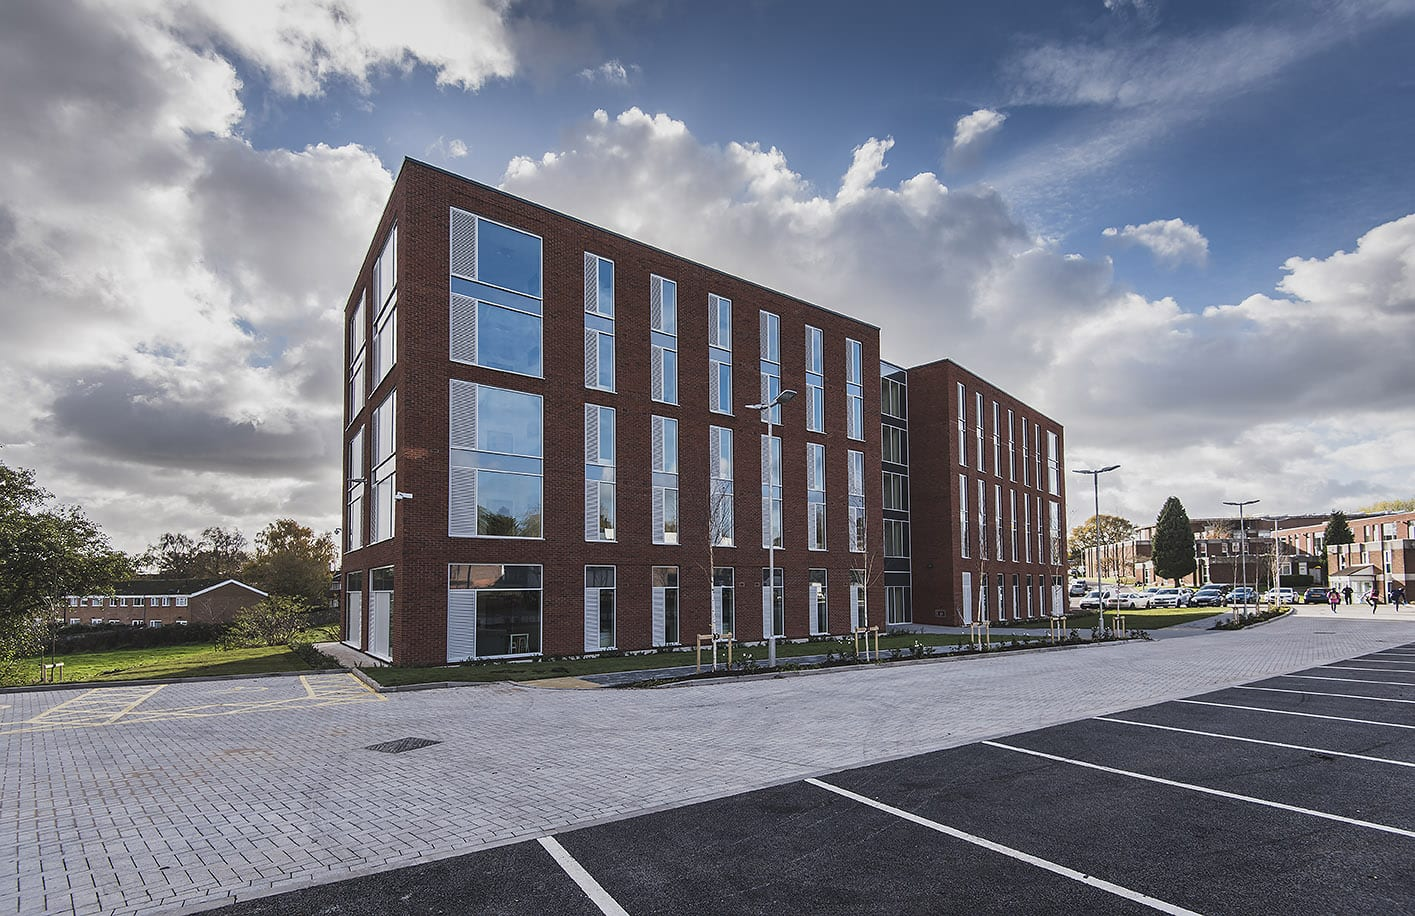 Newman University -New Accommodation - J A Burke Construction Limited - Midlands based ground works, civils and RC frame company.